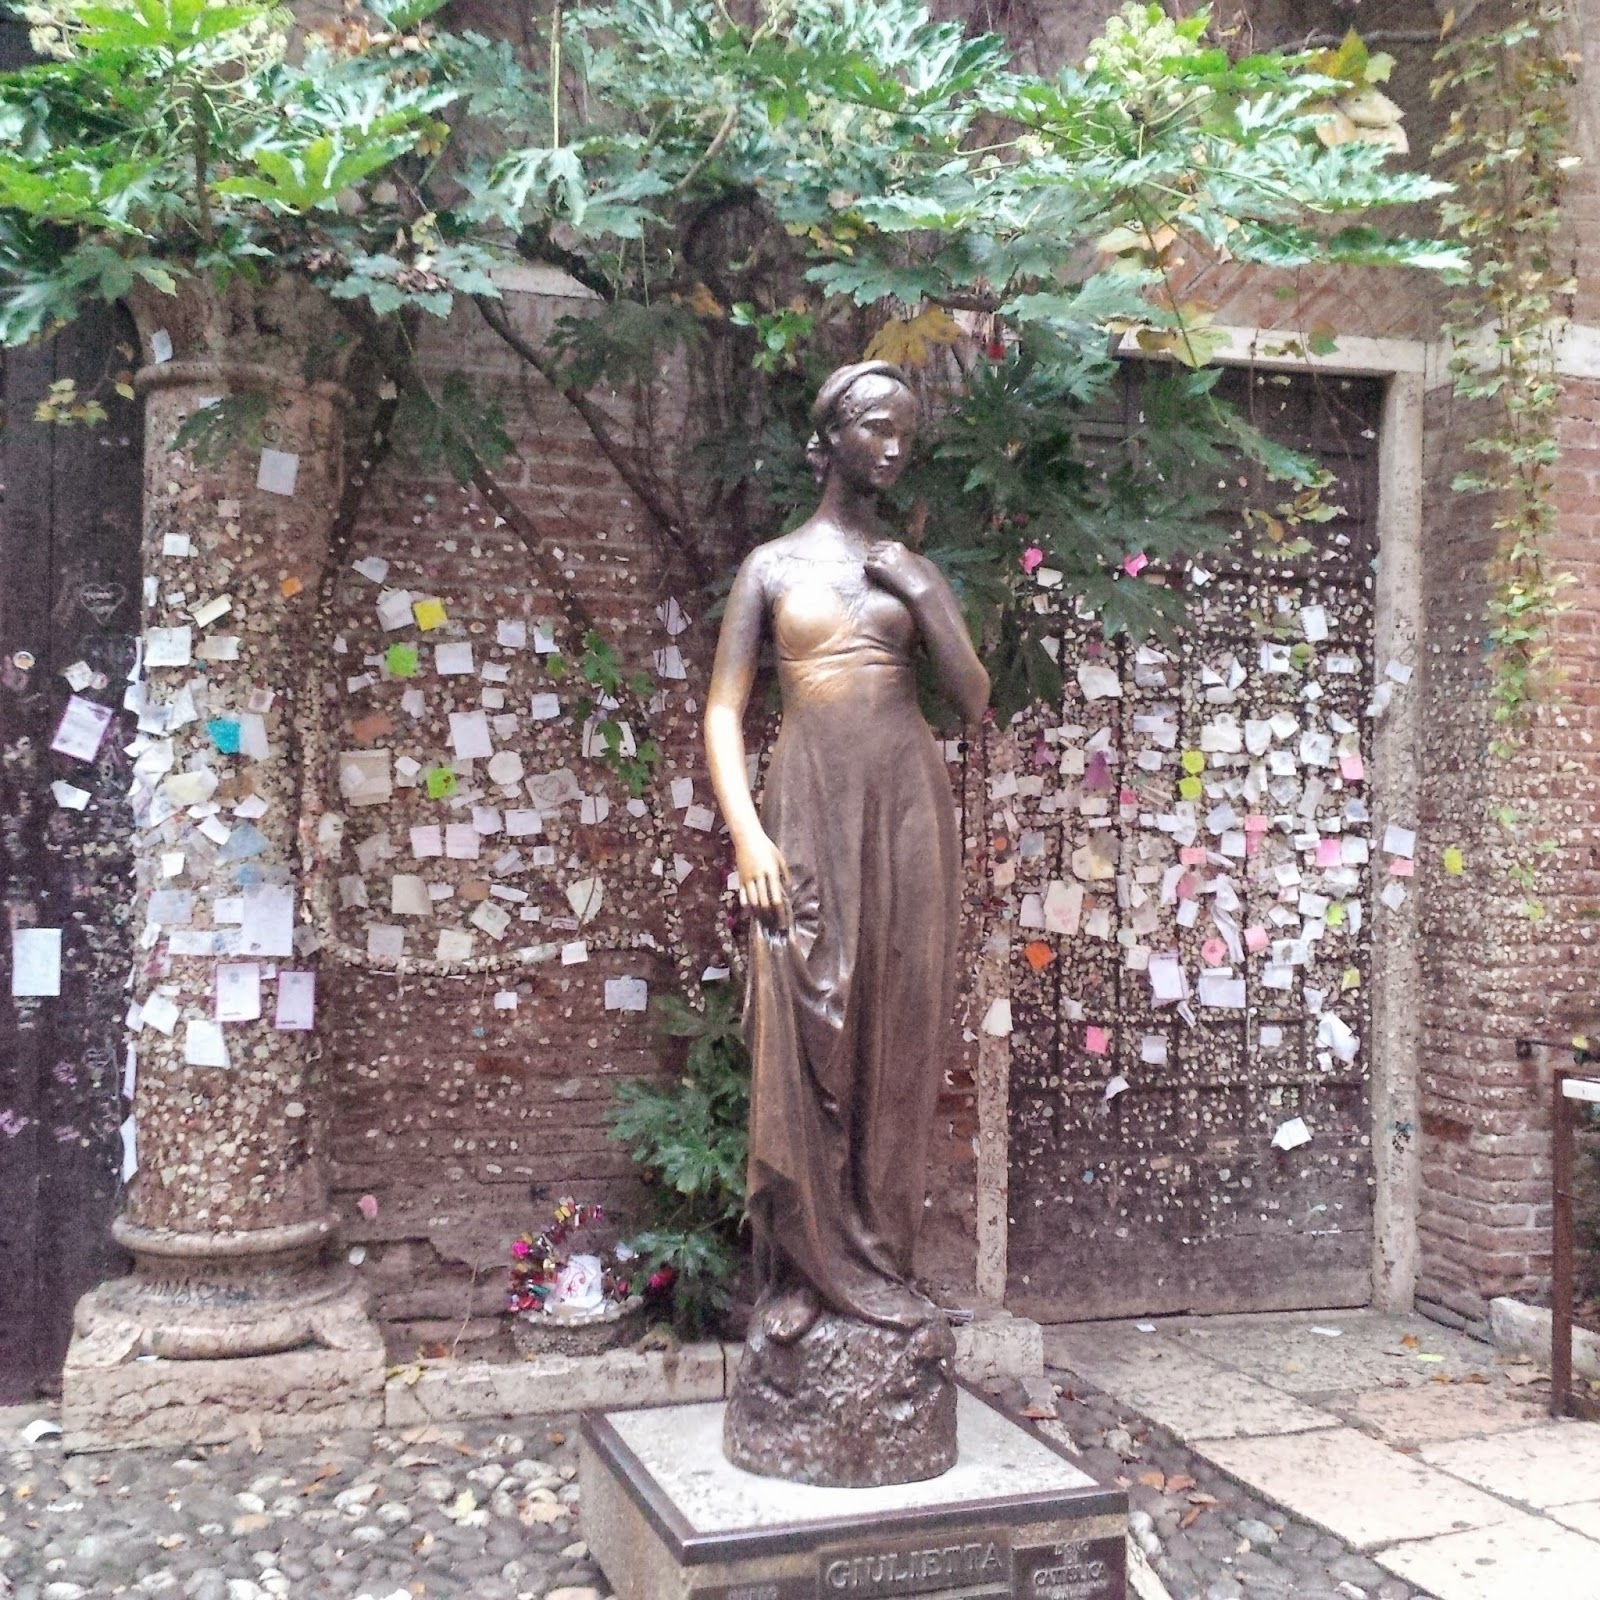 The statue of Juliet in front of her house in Verona